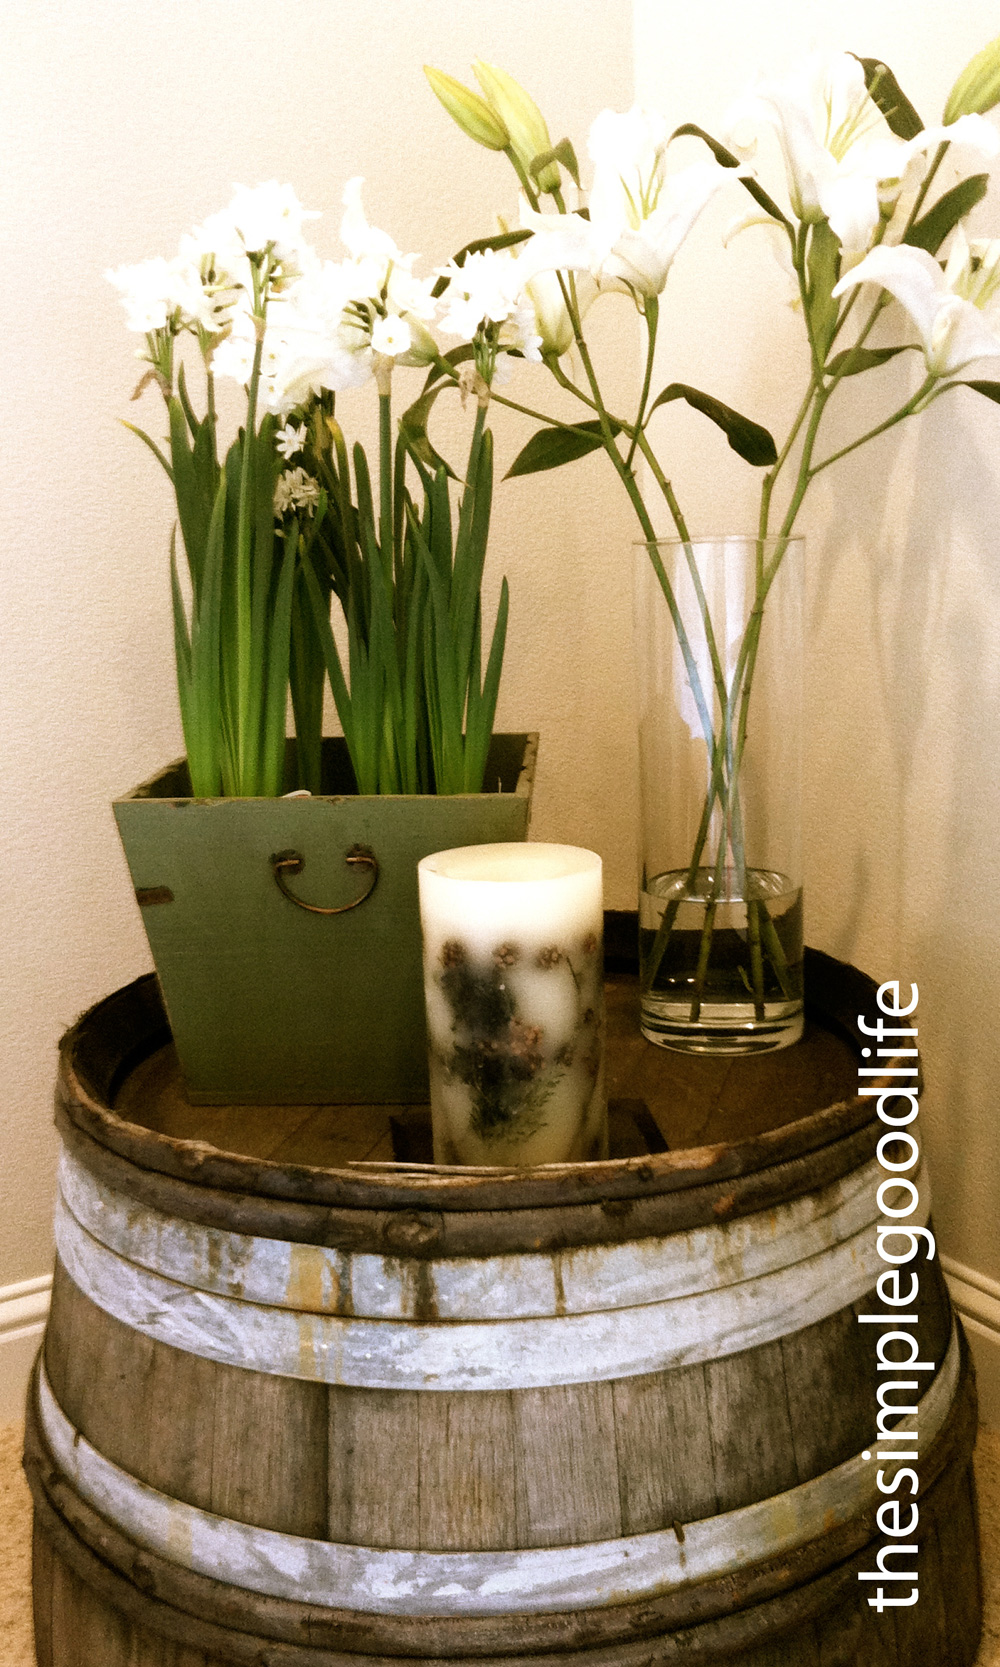 Side Table Decor : Displaying 13> Images For - Side Table Decoration Ideas..., 1000x1667 ...